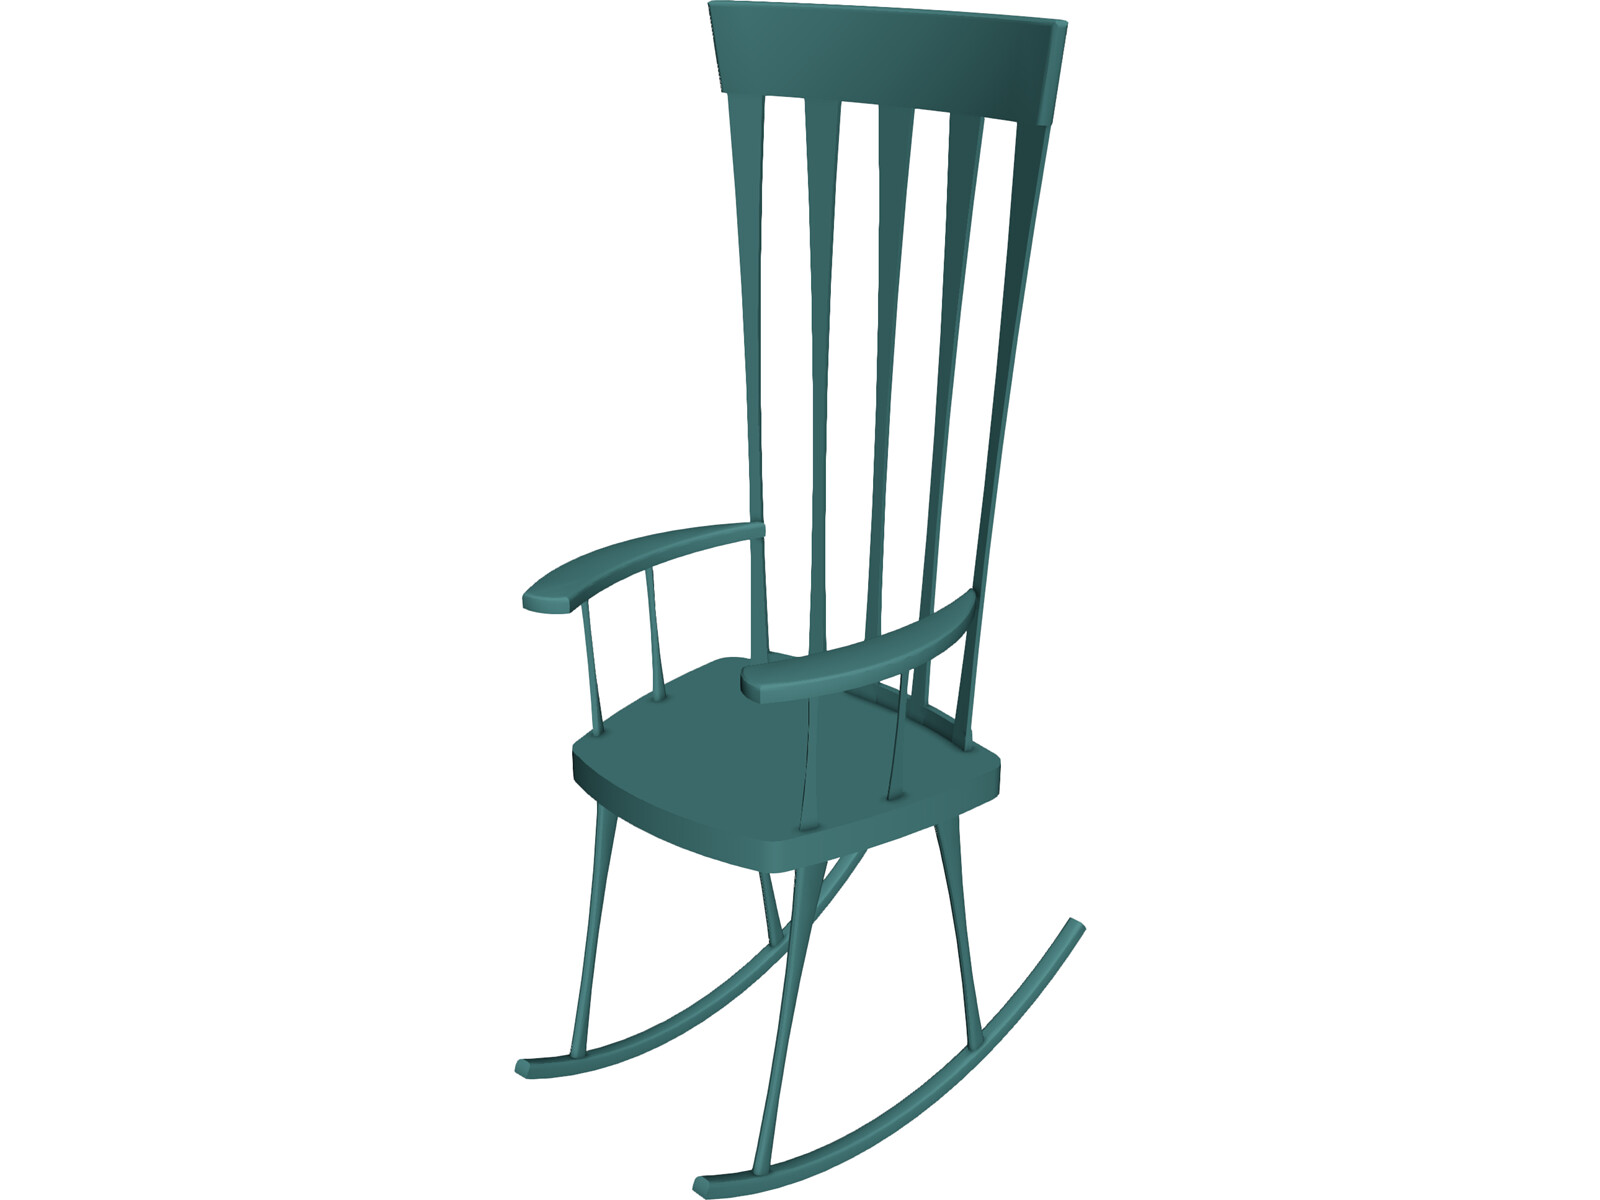 Rocking Chair Clip Art ~ Rocking chair d model cad browser